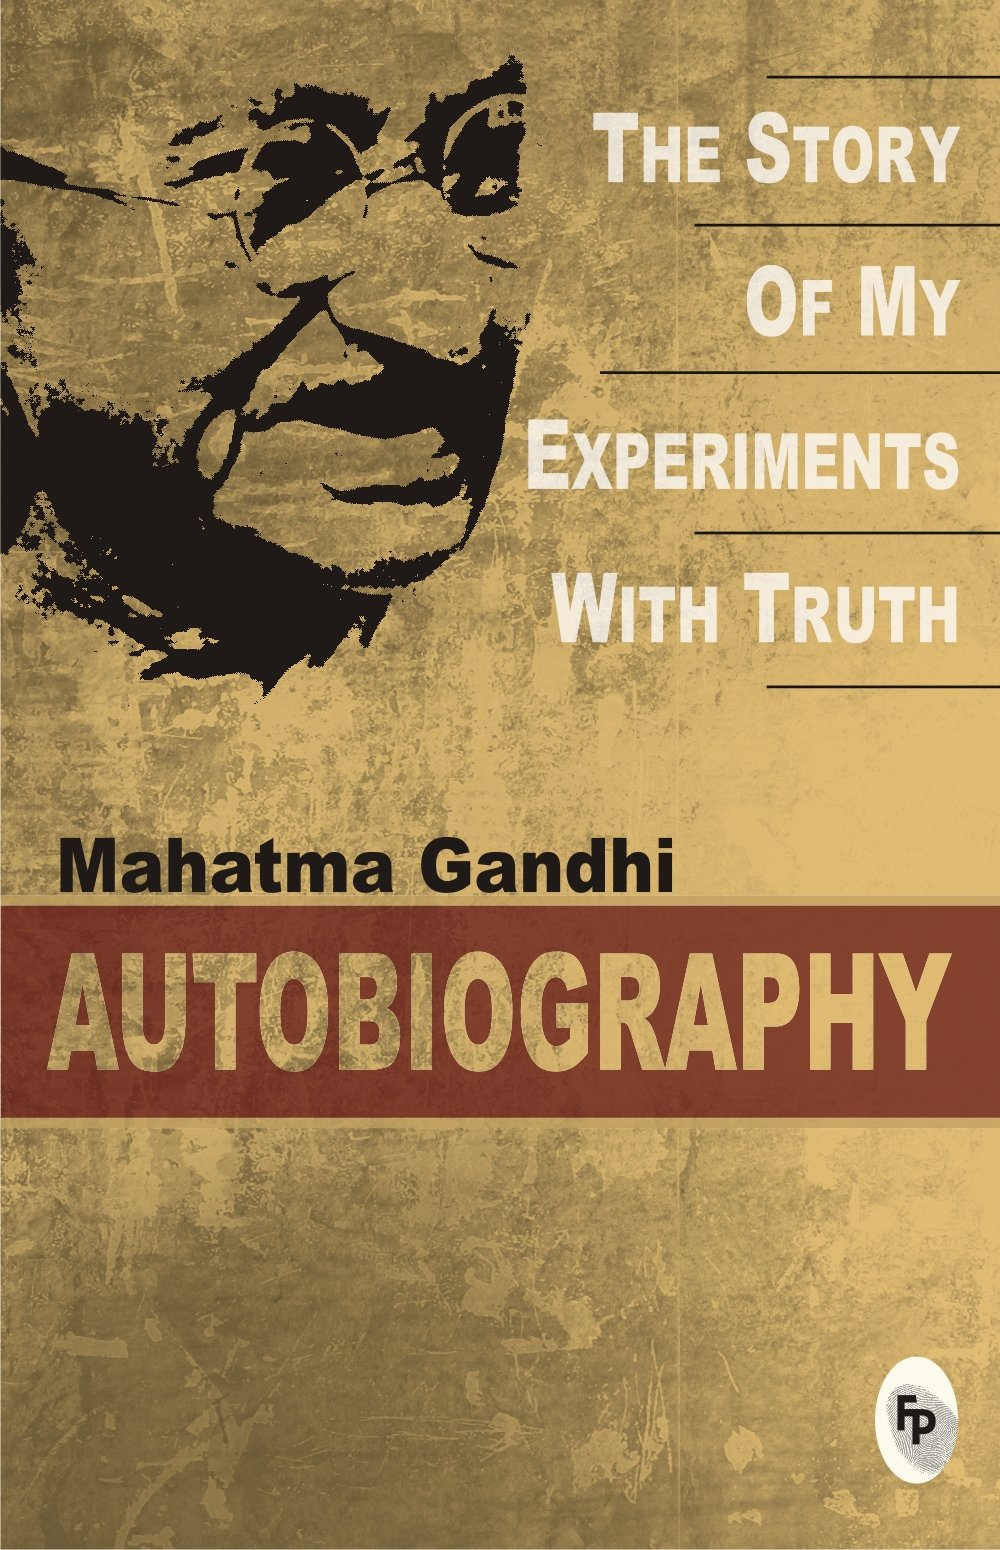 The Story of My Experiments with Truth pdf download